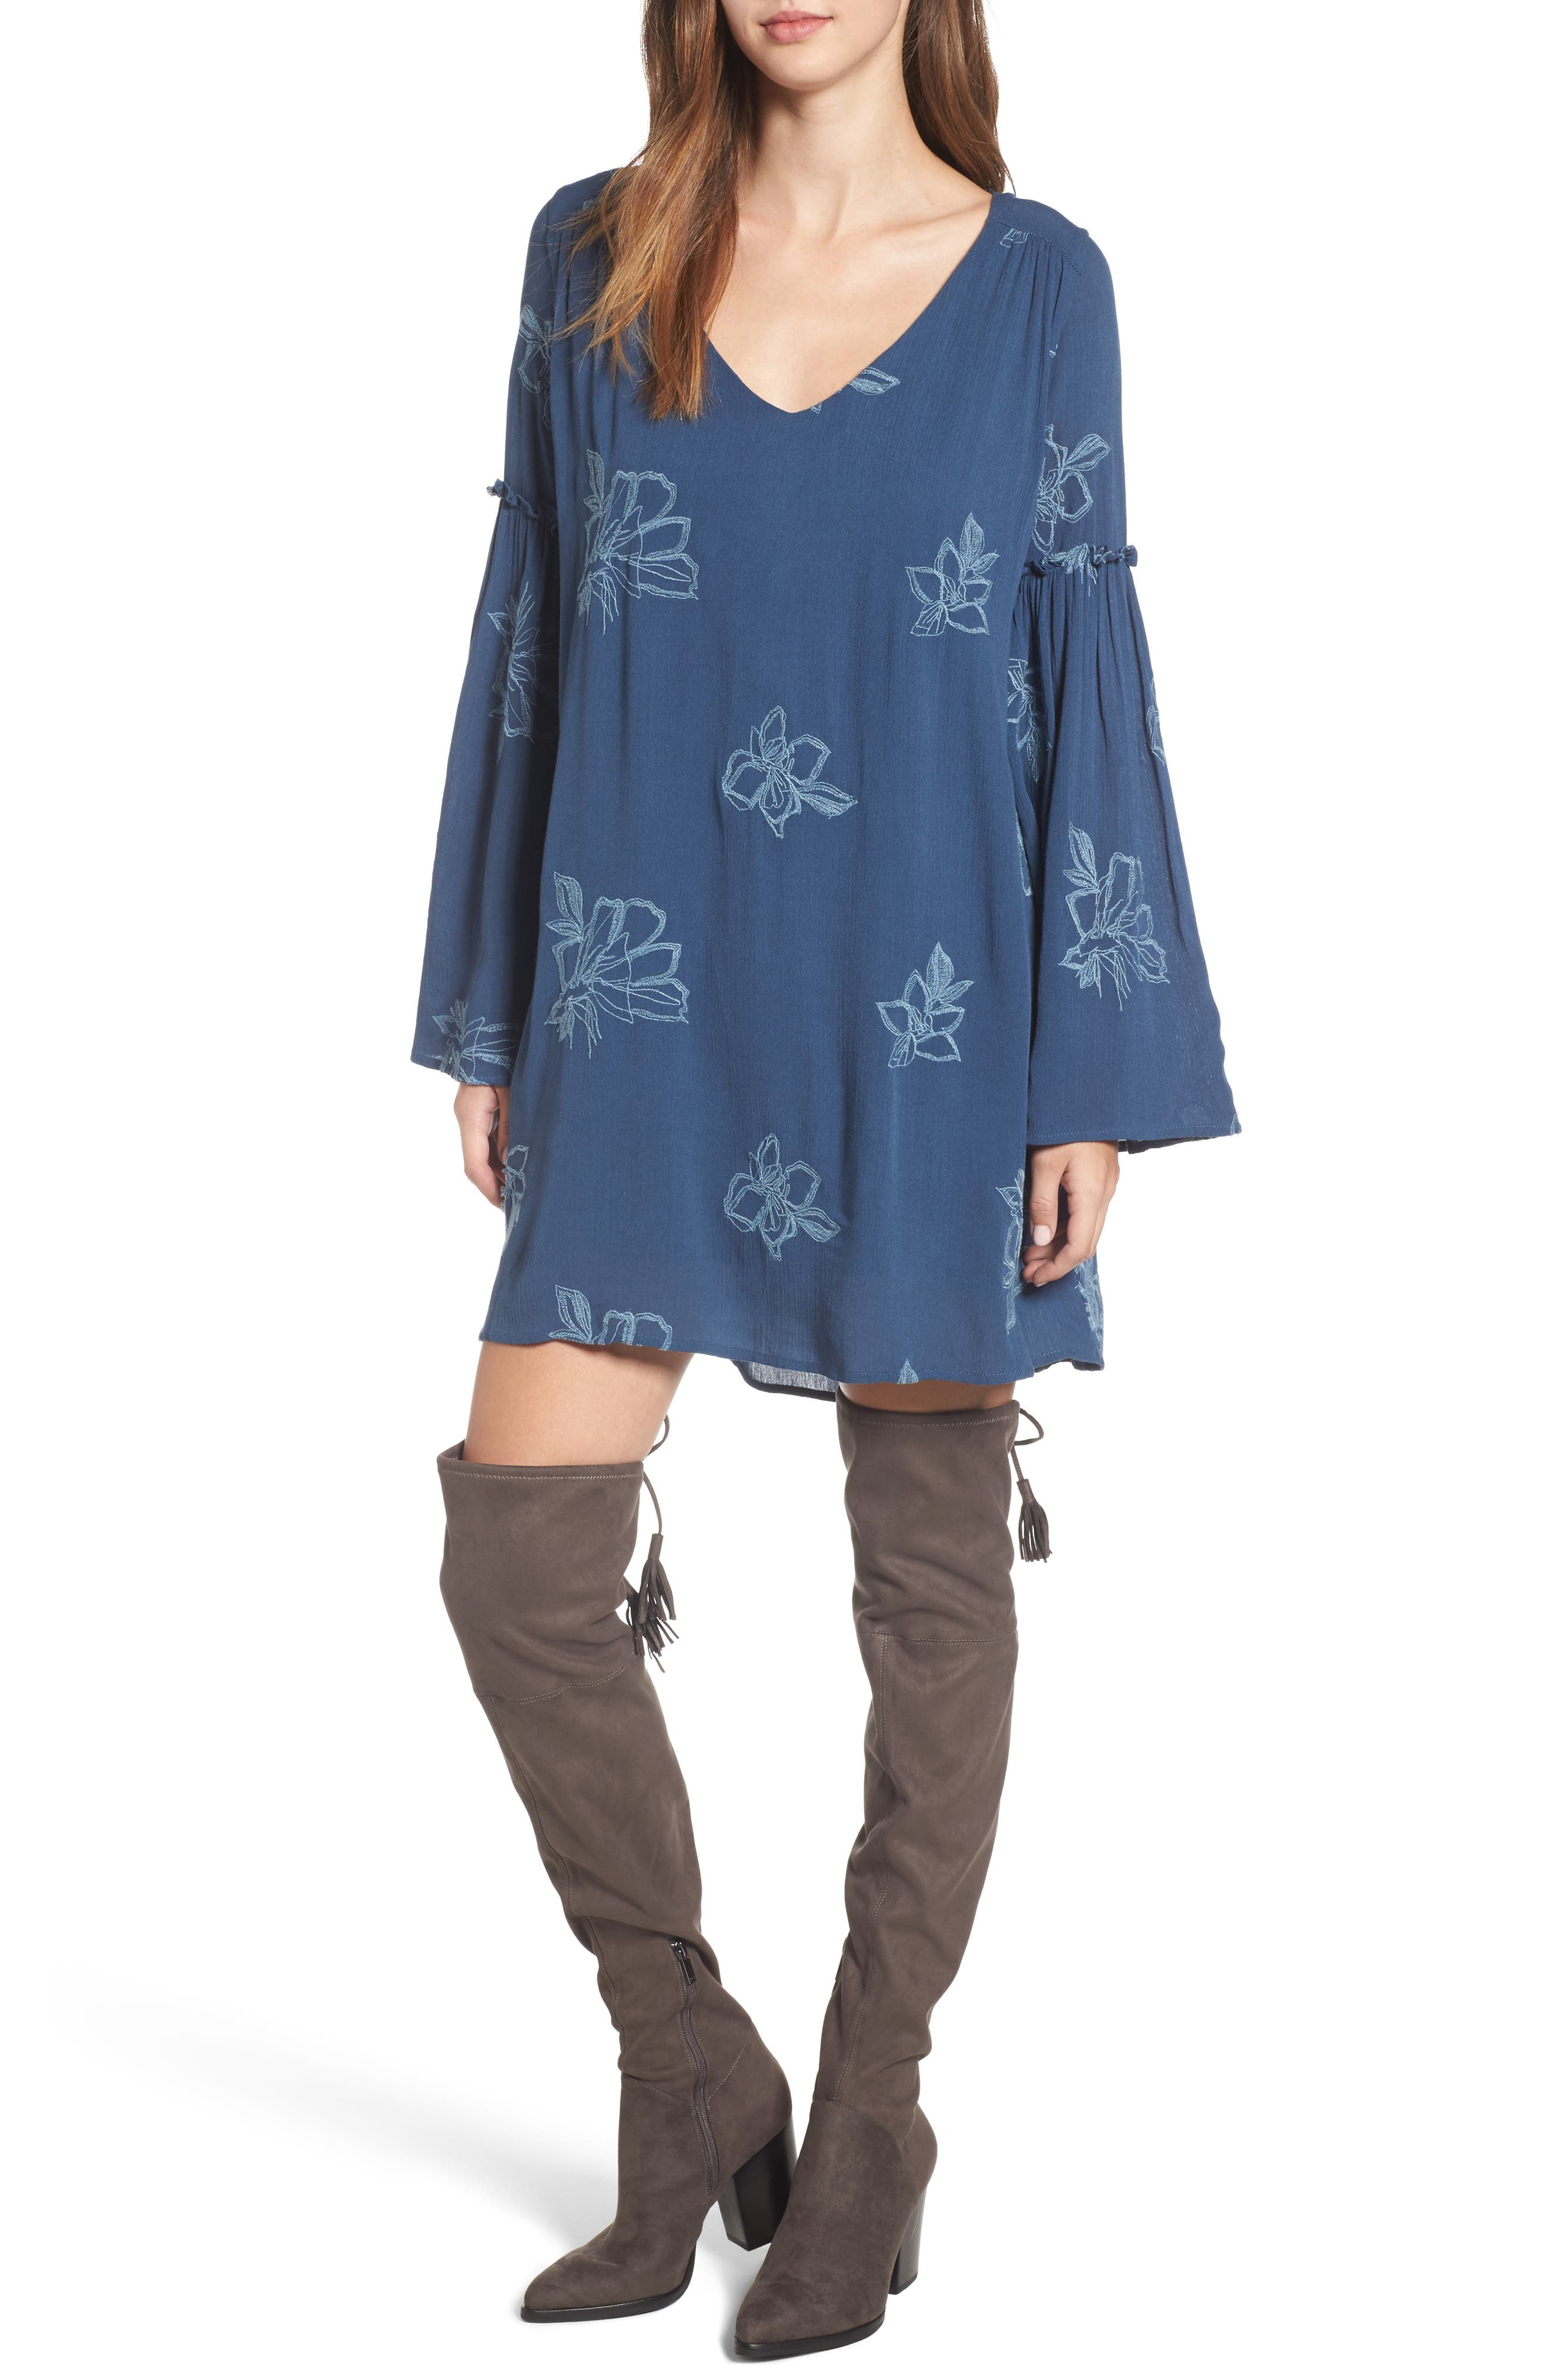 Autumn Embroidered Swing Dress,                         Main,                         color, Blue